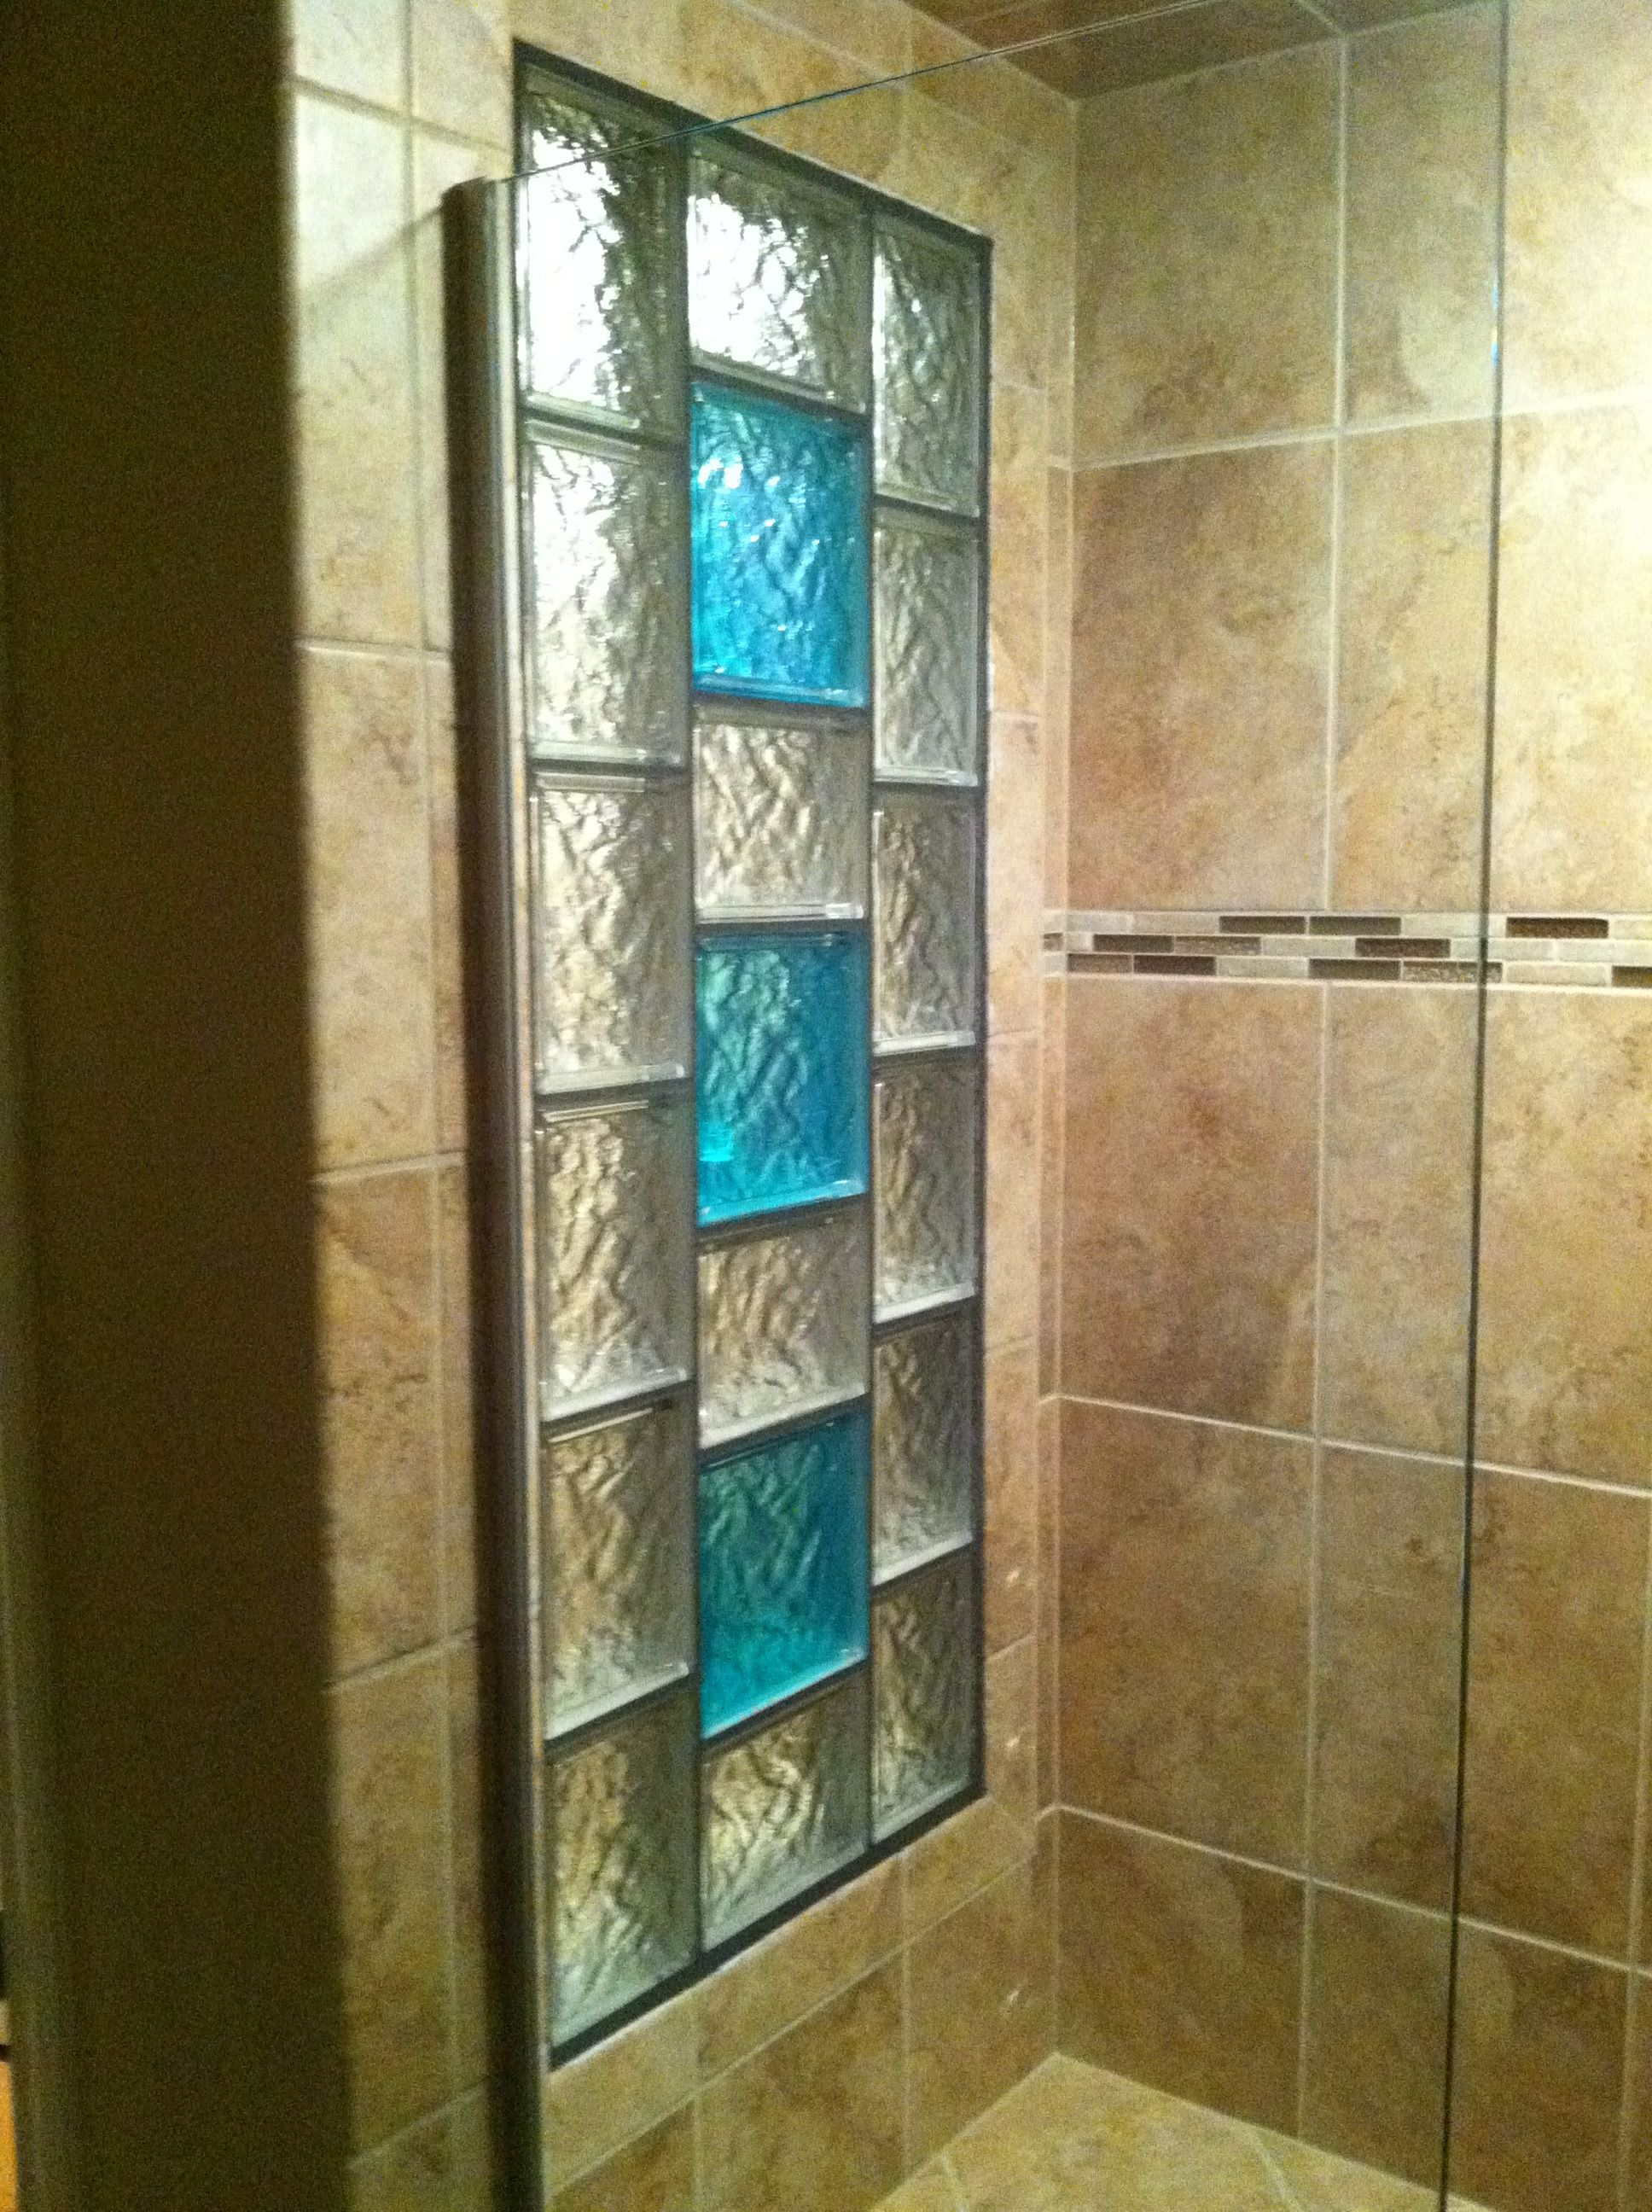 Shower with window ideas  glass block bathroom windows  google search  ideas for the house